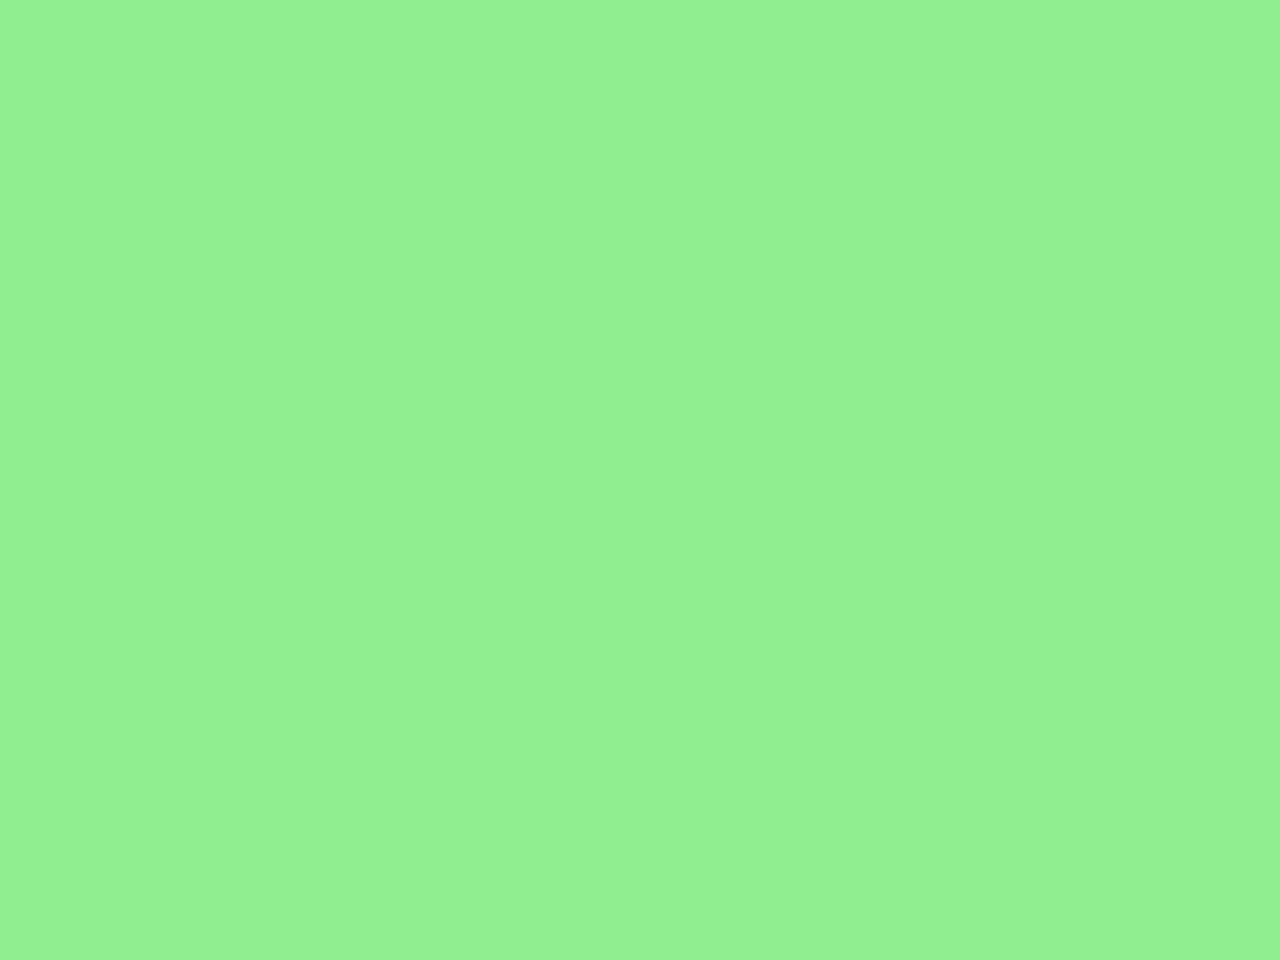 1280x960 Light Green Solid Color Background